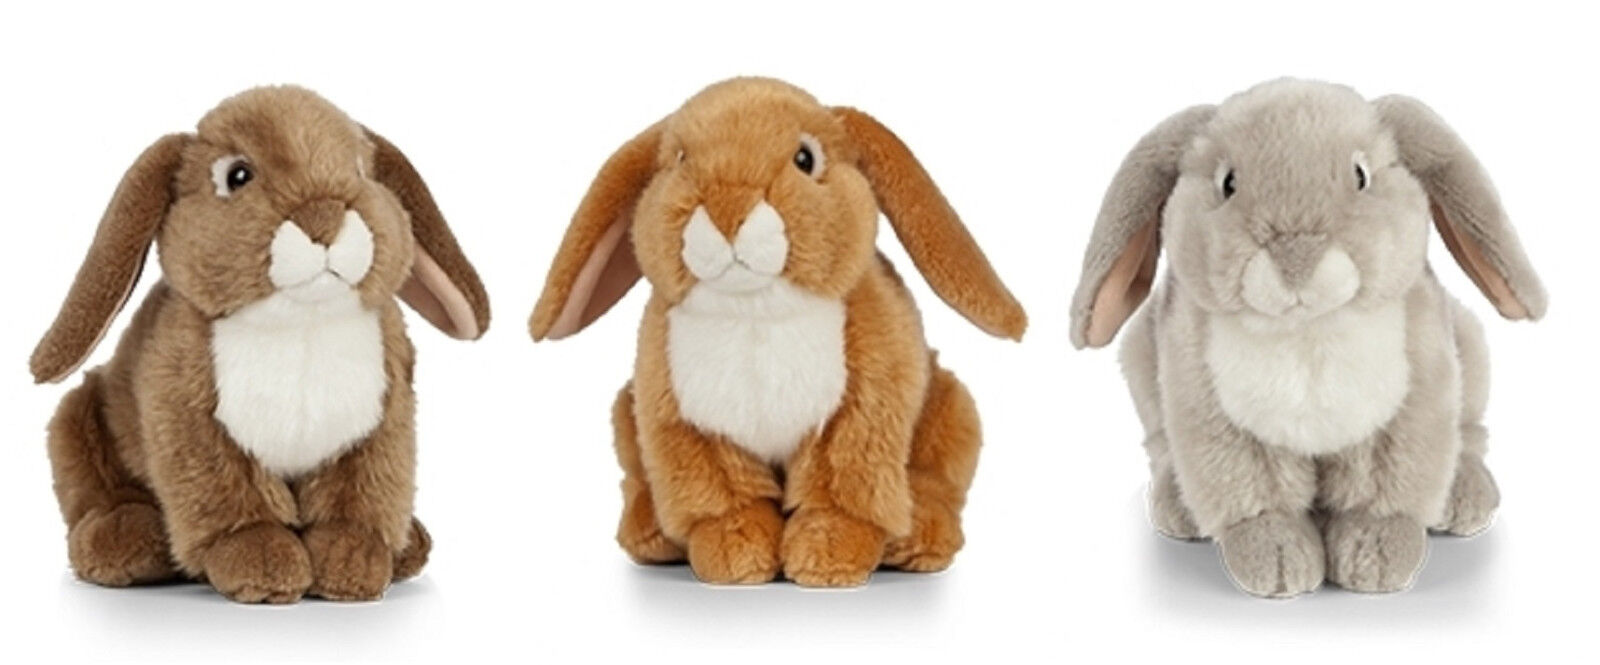 LIVING NATURE FRENCH LOP EARED RABBIT - AN472 SOFT FLUFFY BUNNY STUFFED PLUSH